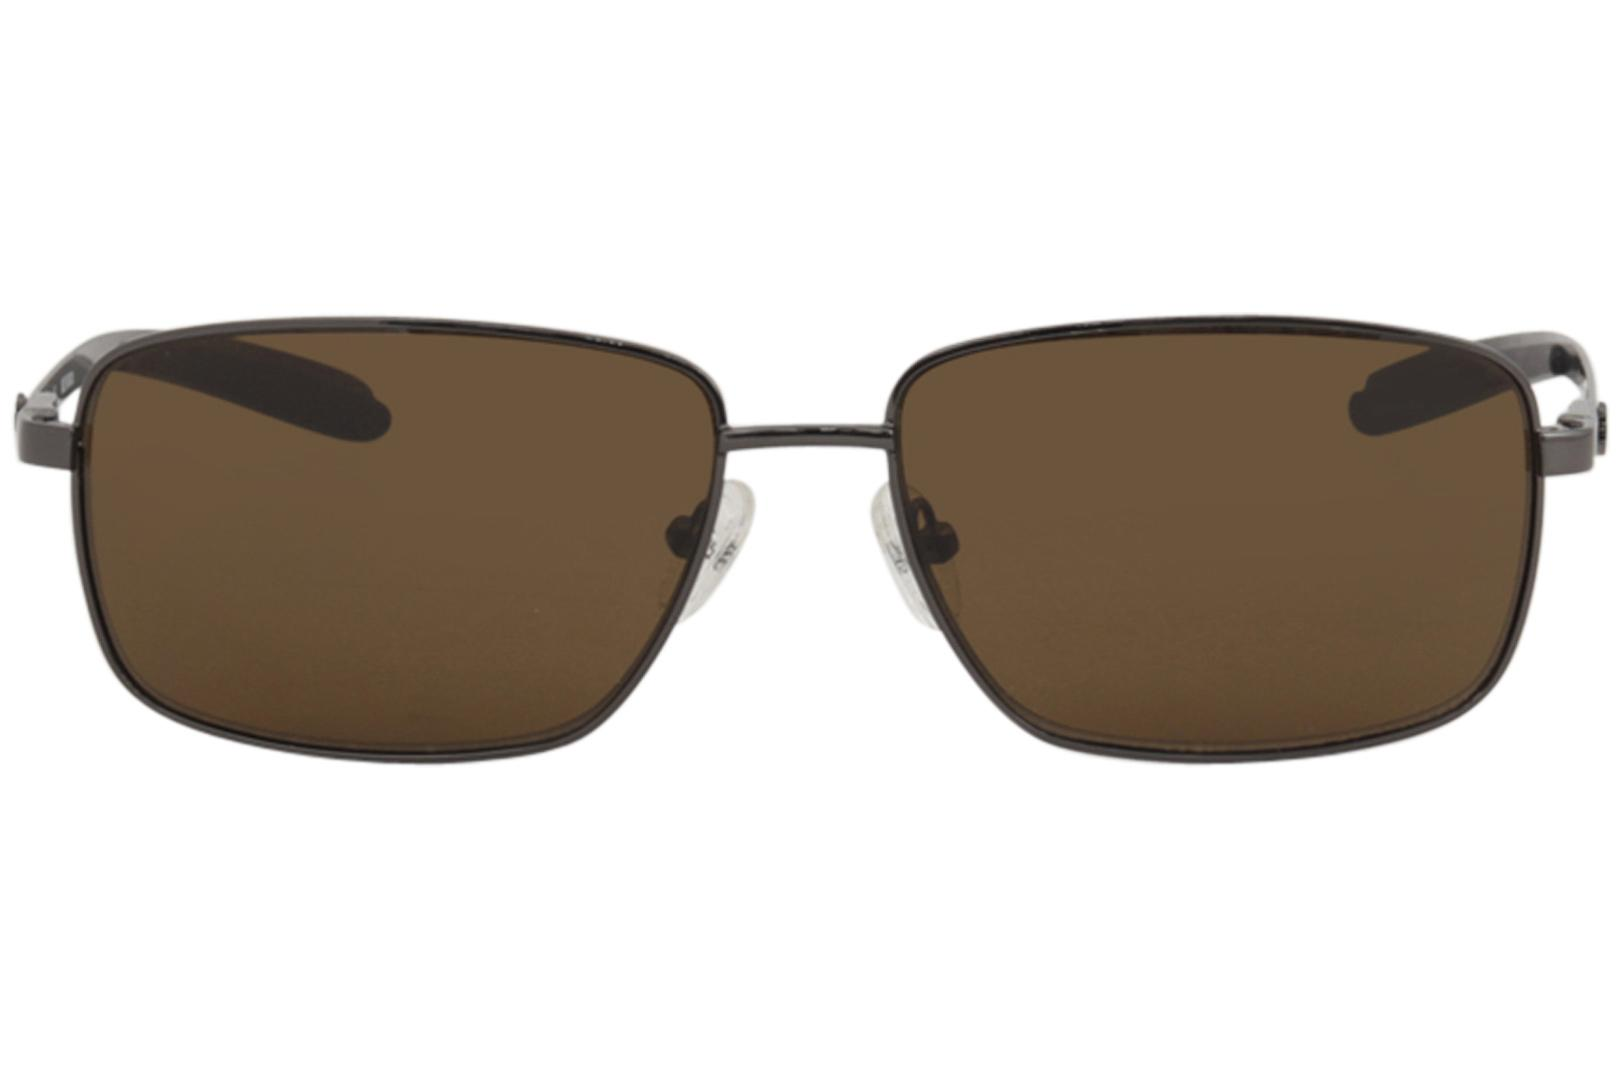 190d6ac714 Harley Davidson Men s HDX878 HDX 878 Fashion Square Sunglasses by  Harley-Davidson